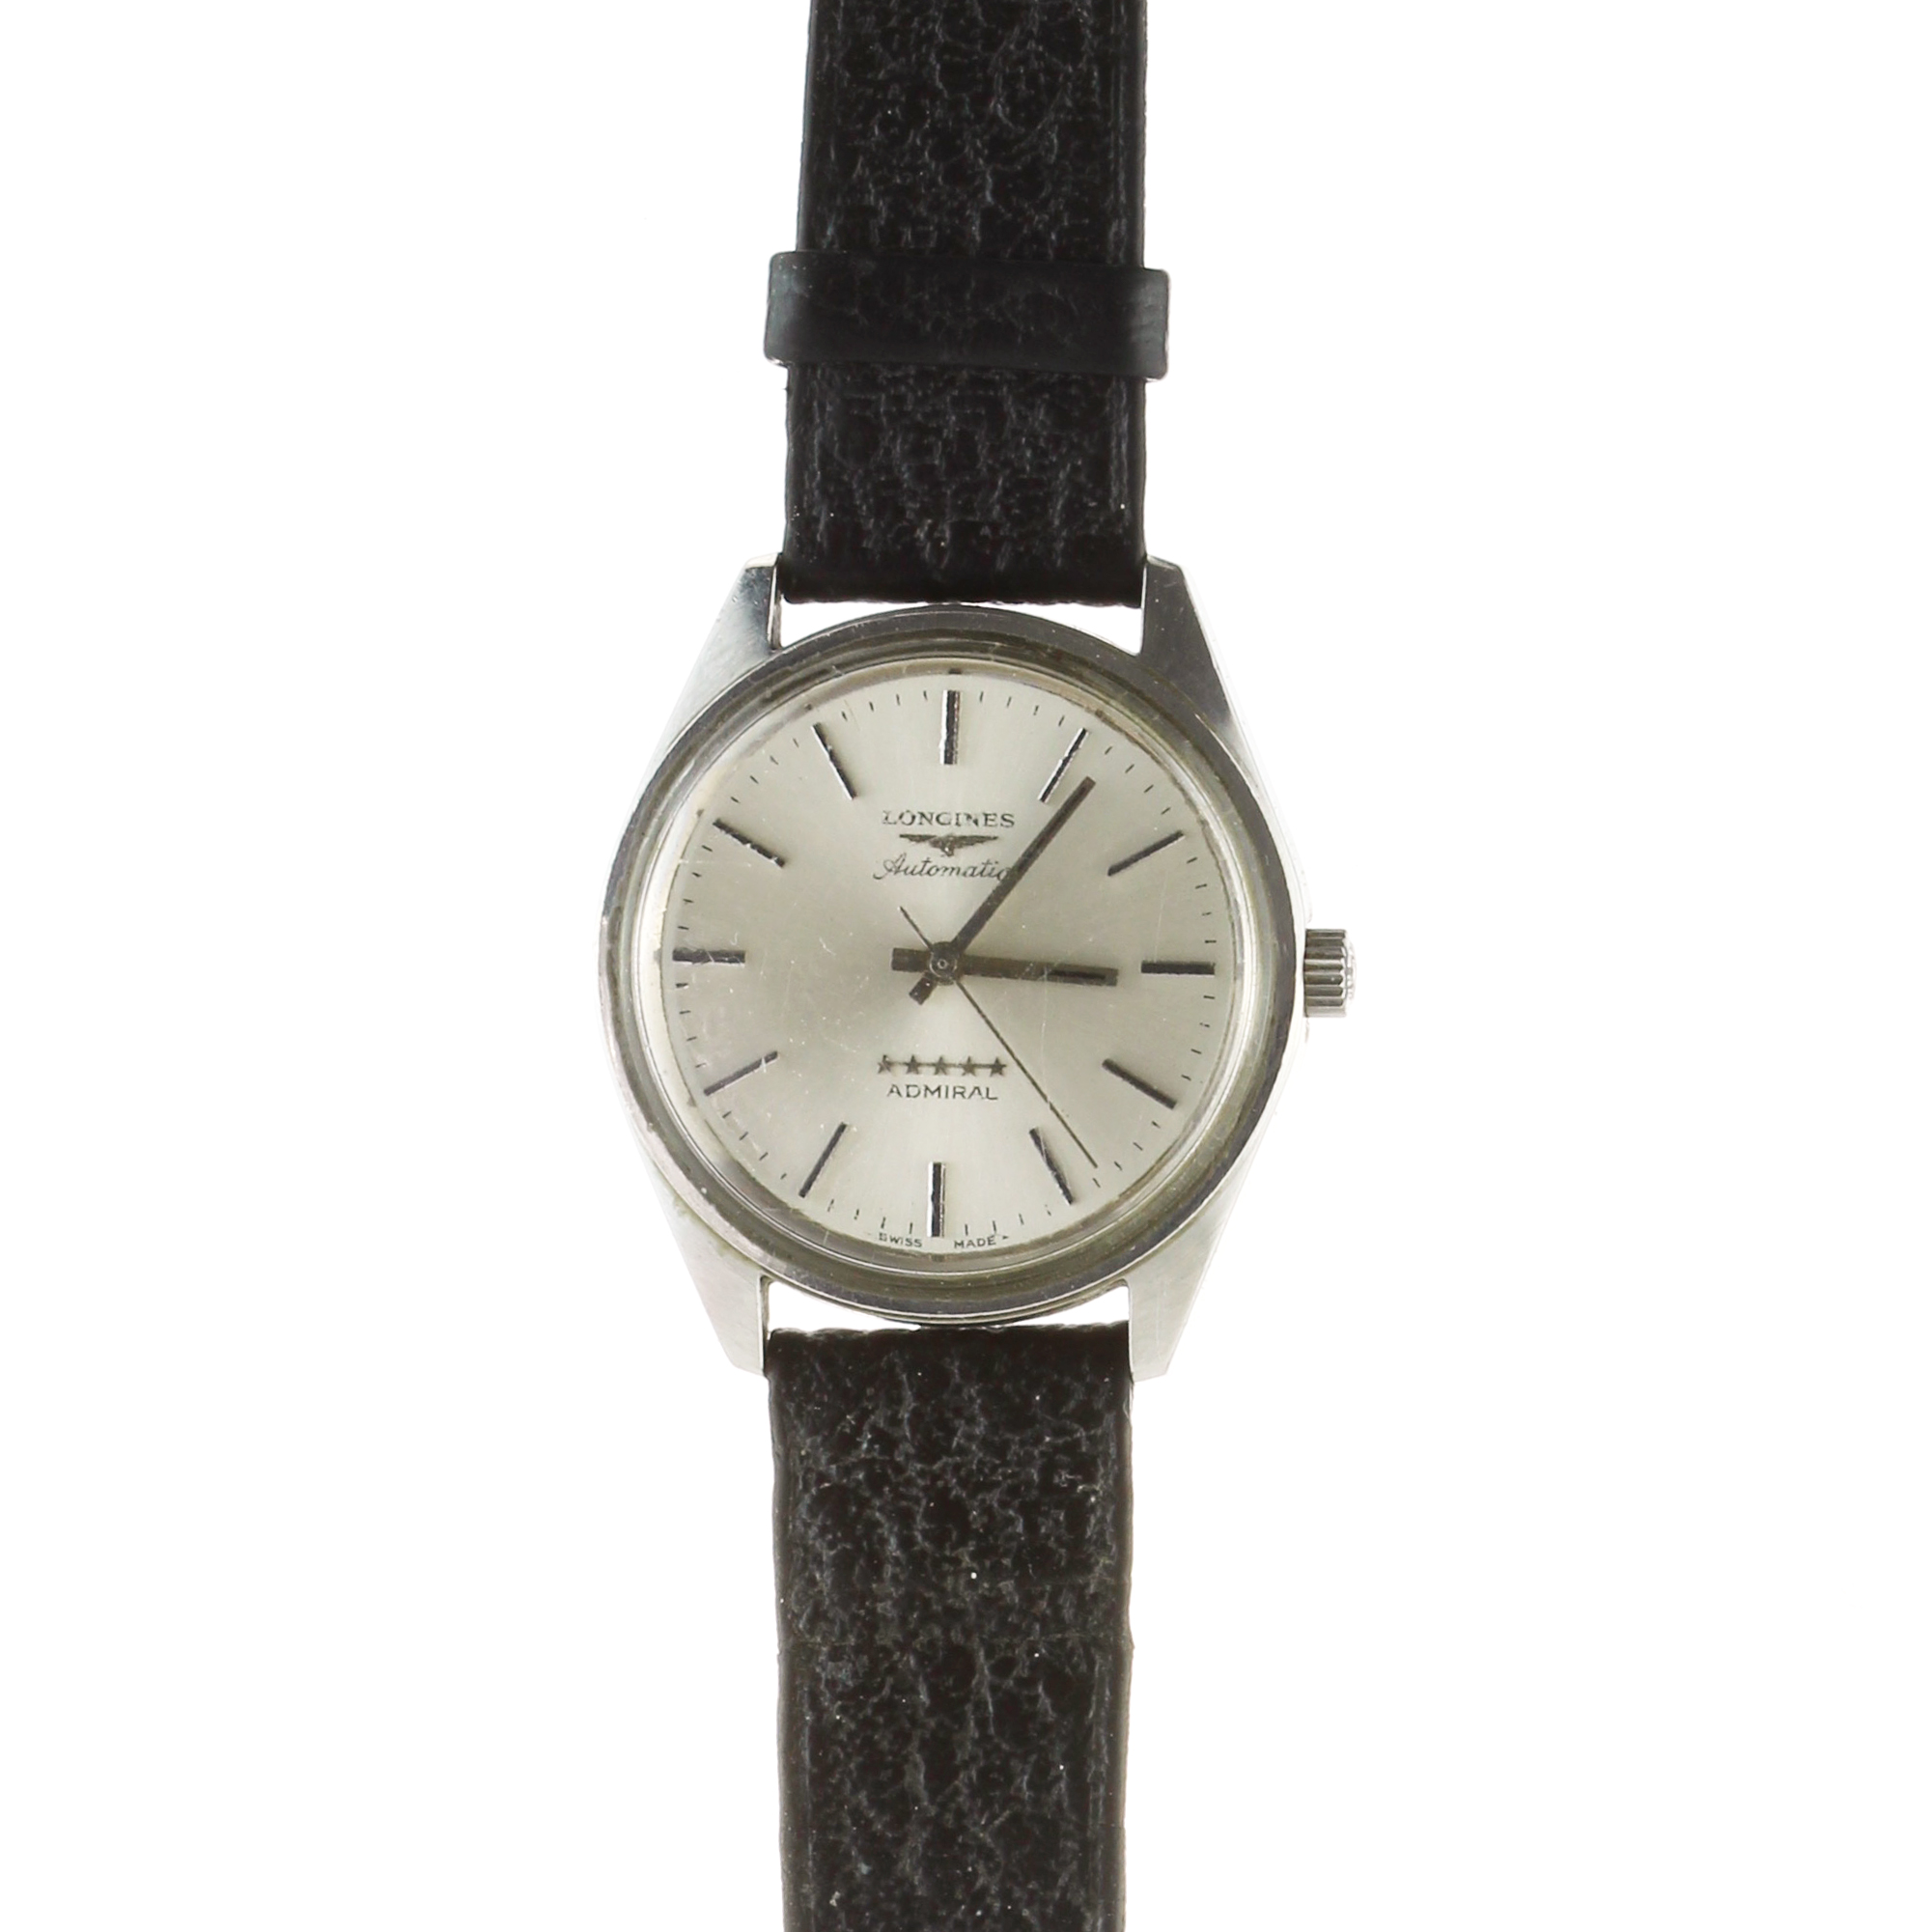 Los 58 - LONGINES An Automatic Admiral stainless steel wristwatch by Longines on a leather strap.